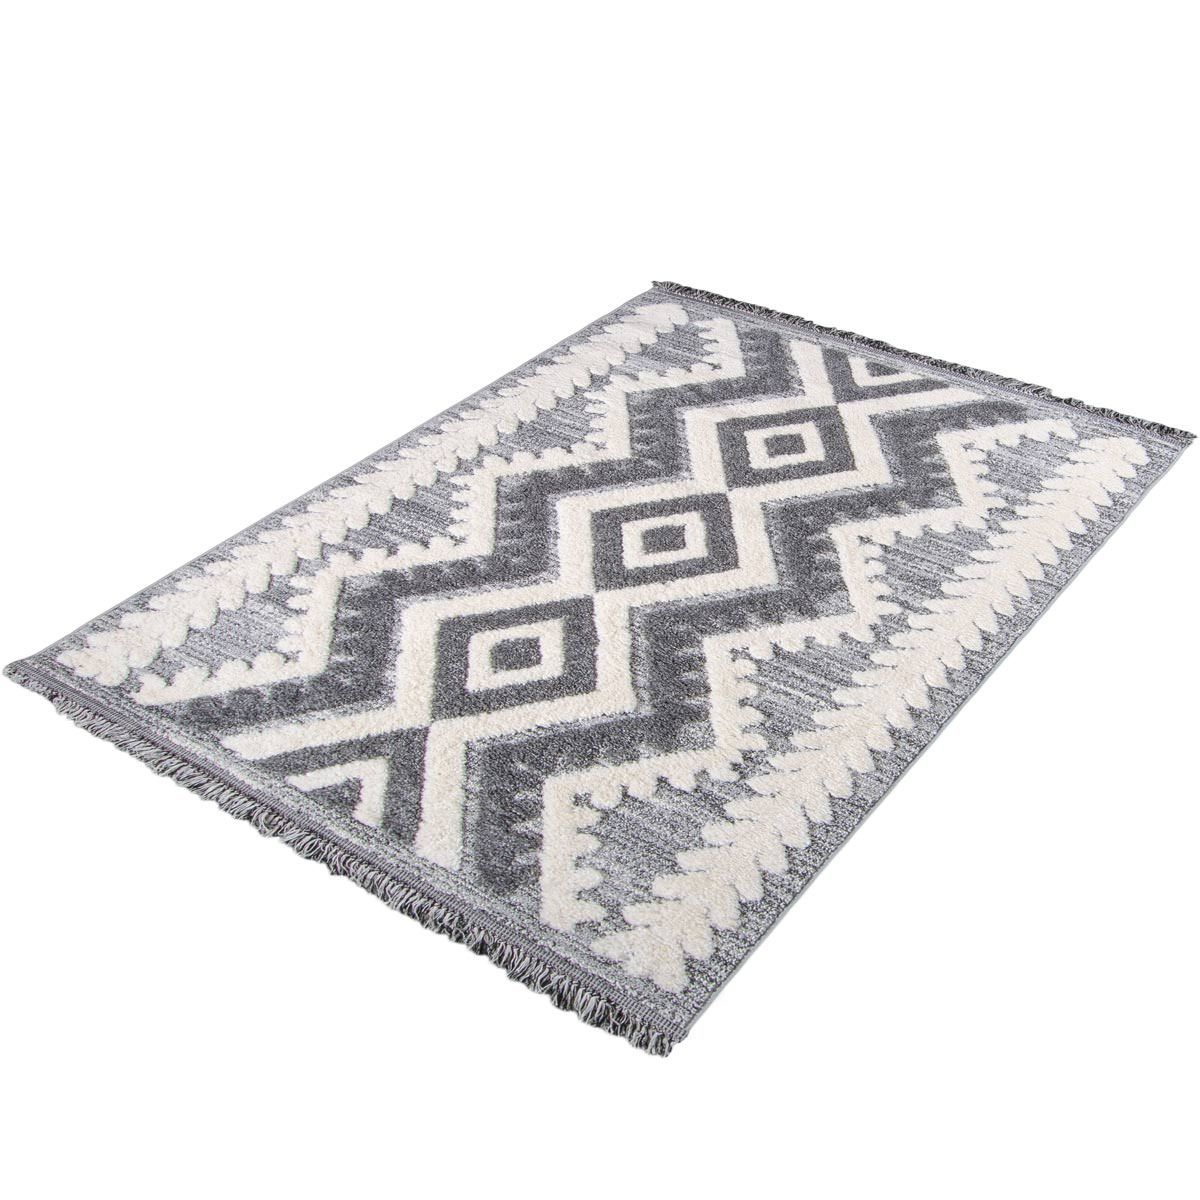 Atlas Rug 08 Grey - Fringes 7